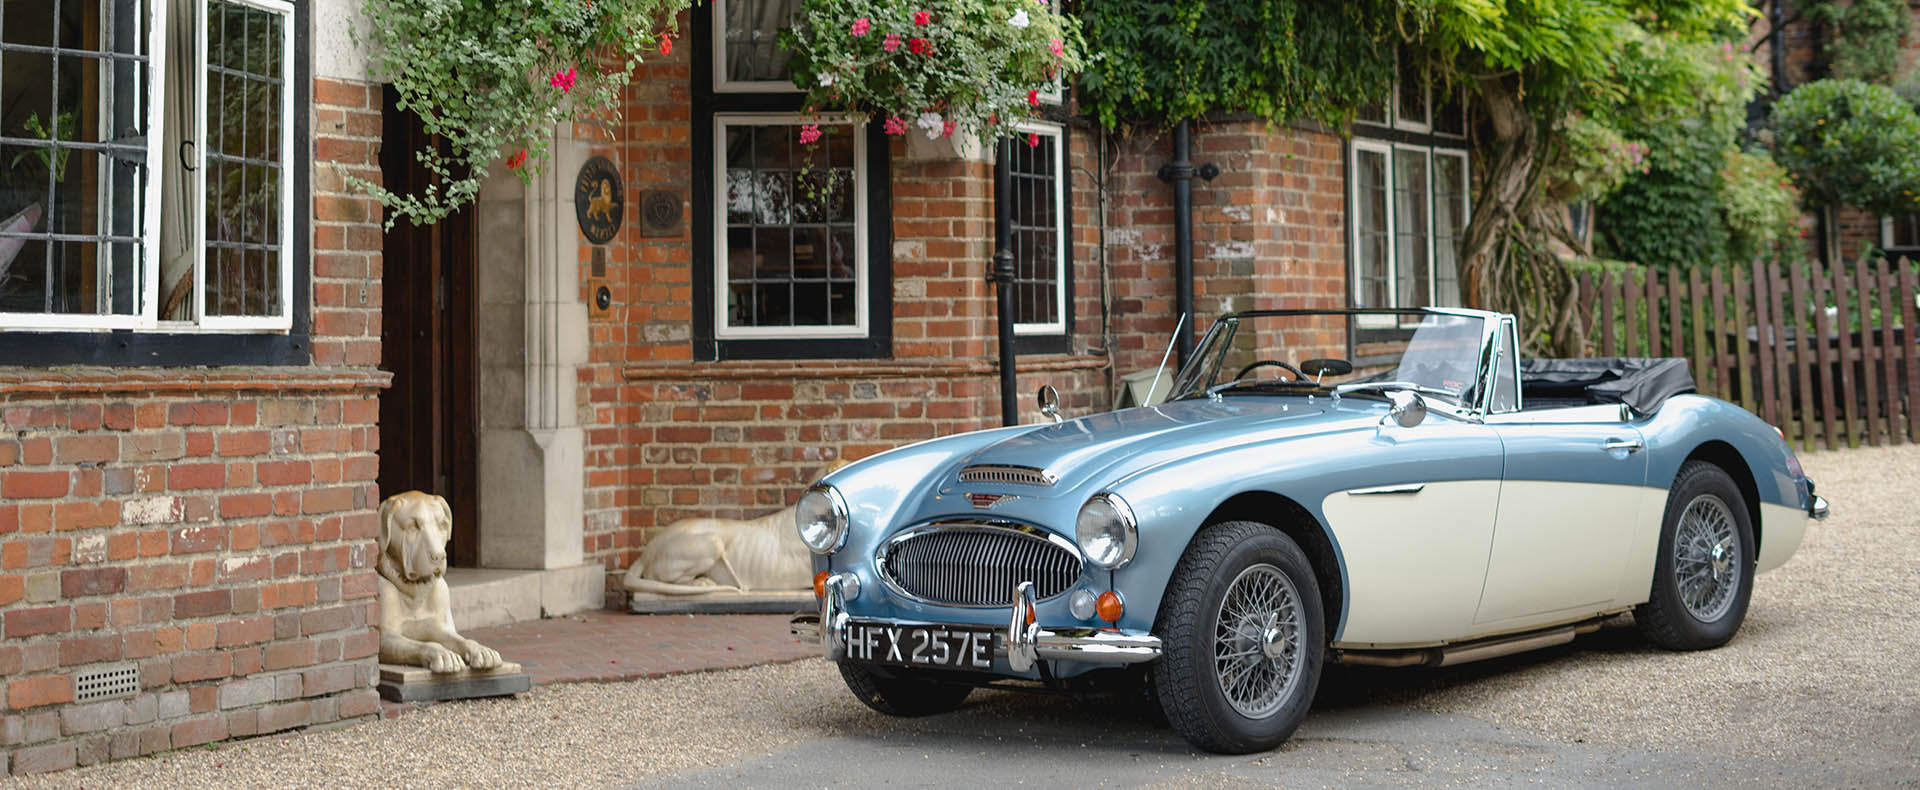 Classic Car Breaks | The Montagu Arms Hotel